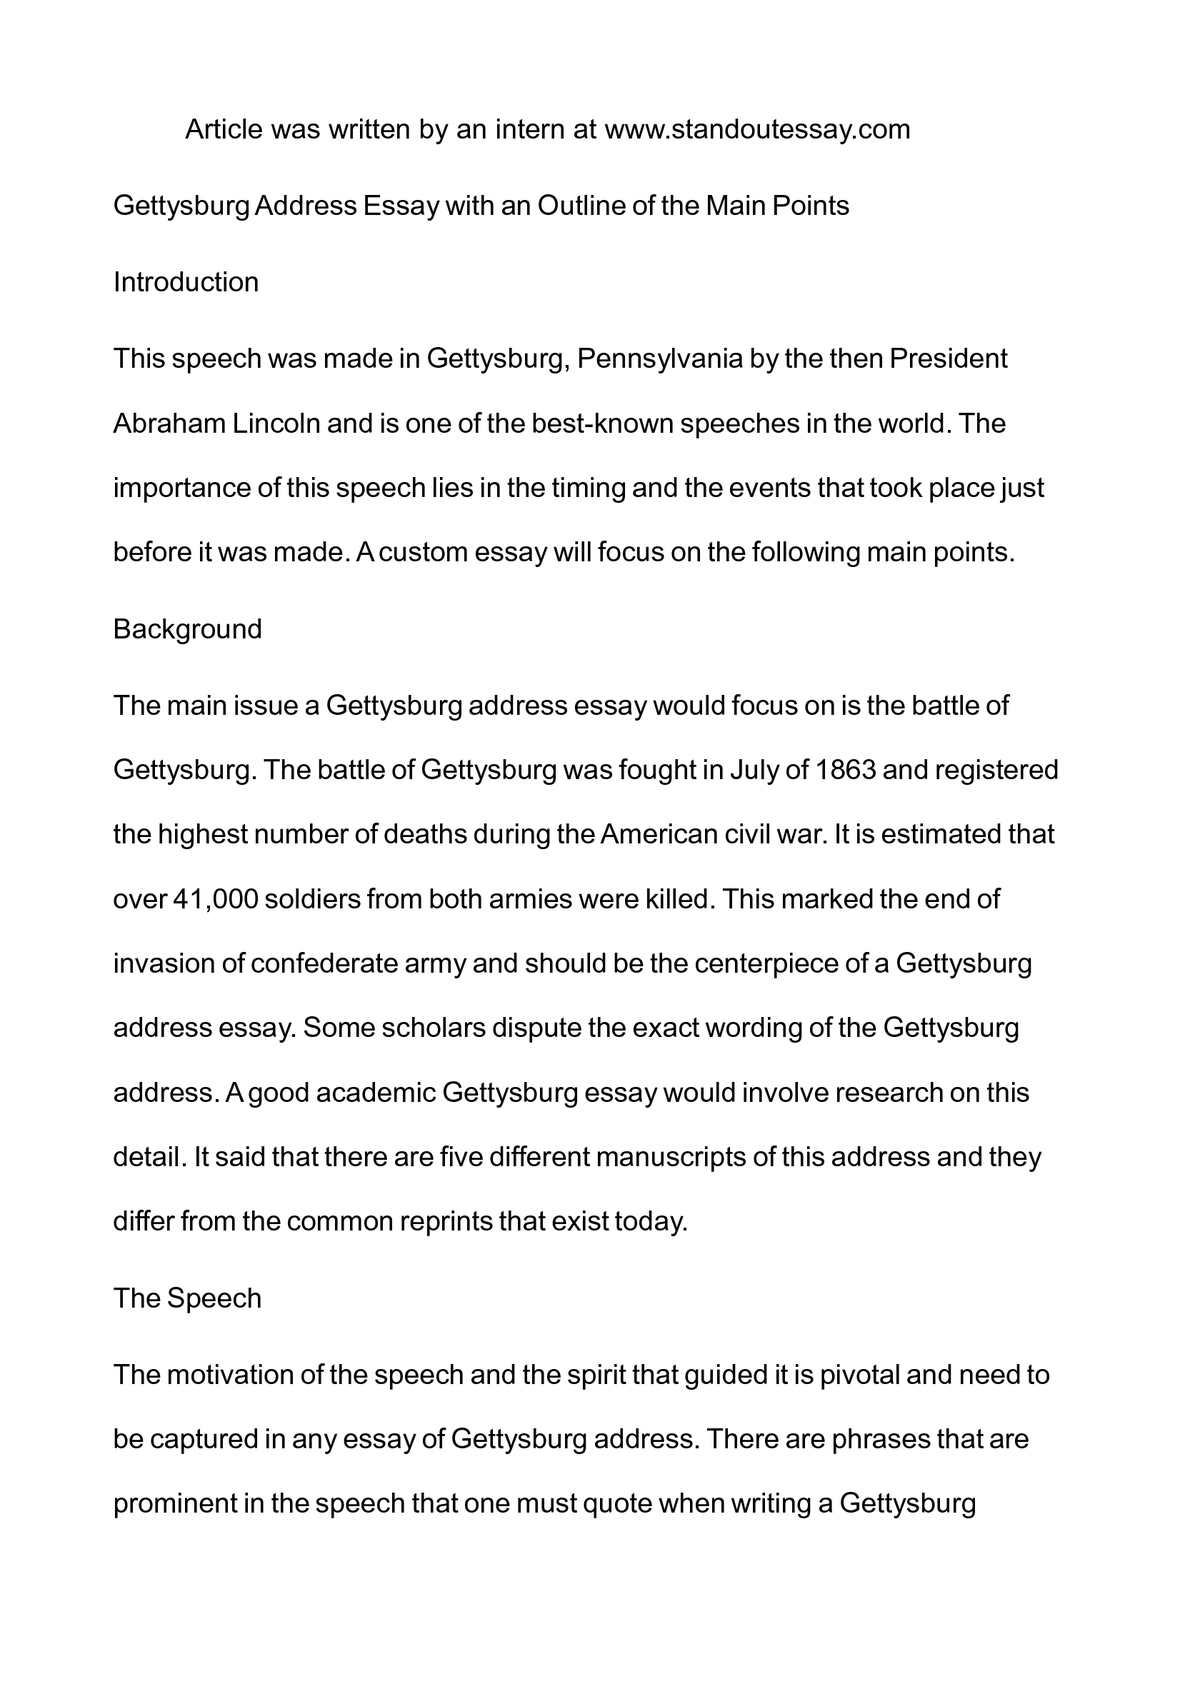 speech critique essay cover letter essay critique example critique  gettysburg address essay calam atilde copy o gettysburg address essay an calamatildecopyo gettysburg address essay an critical essay writing tk